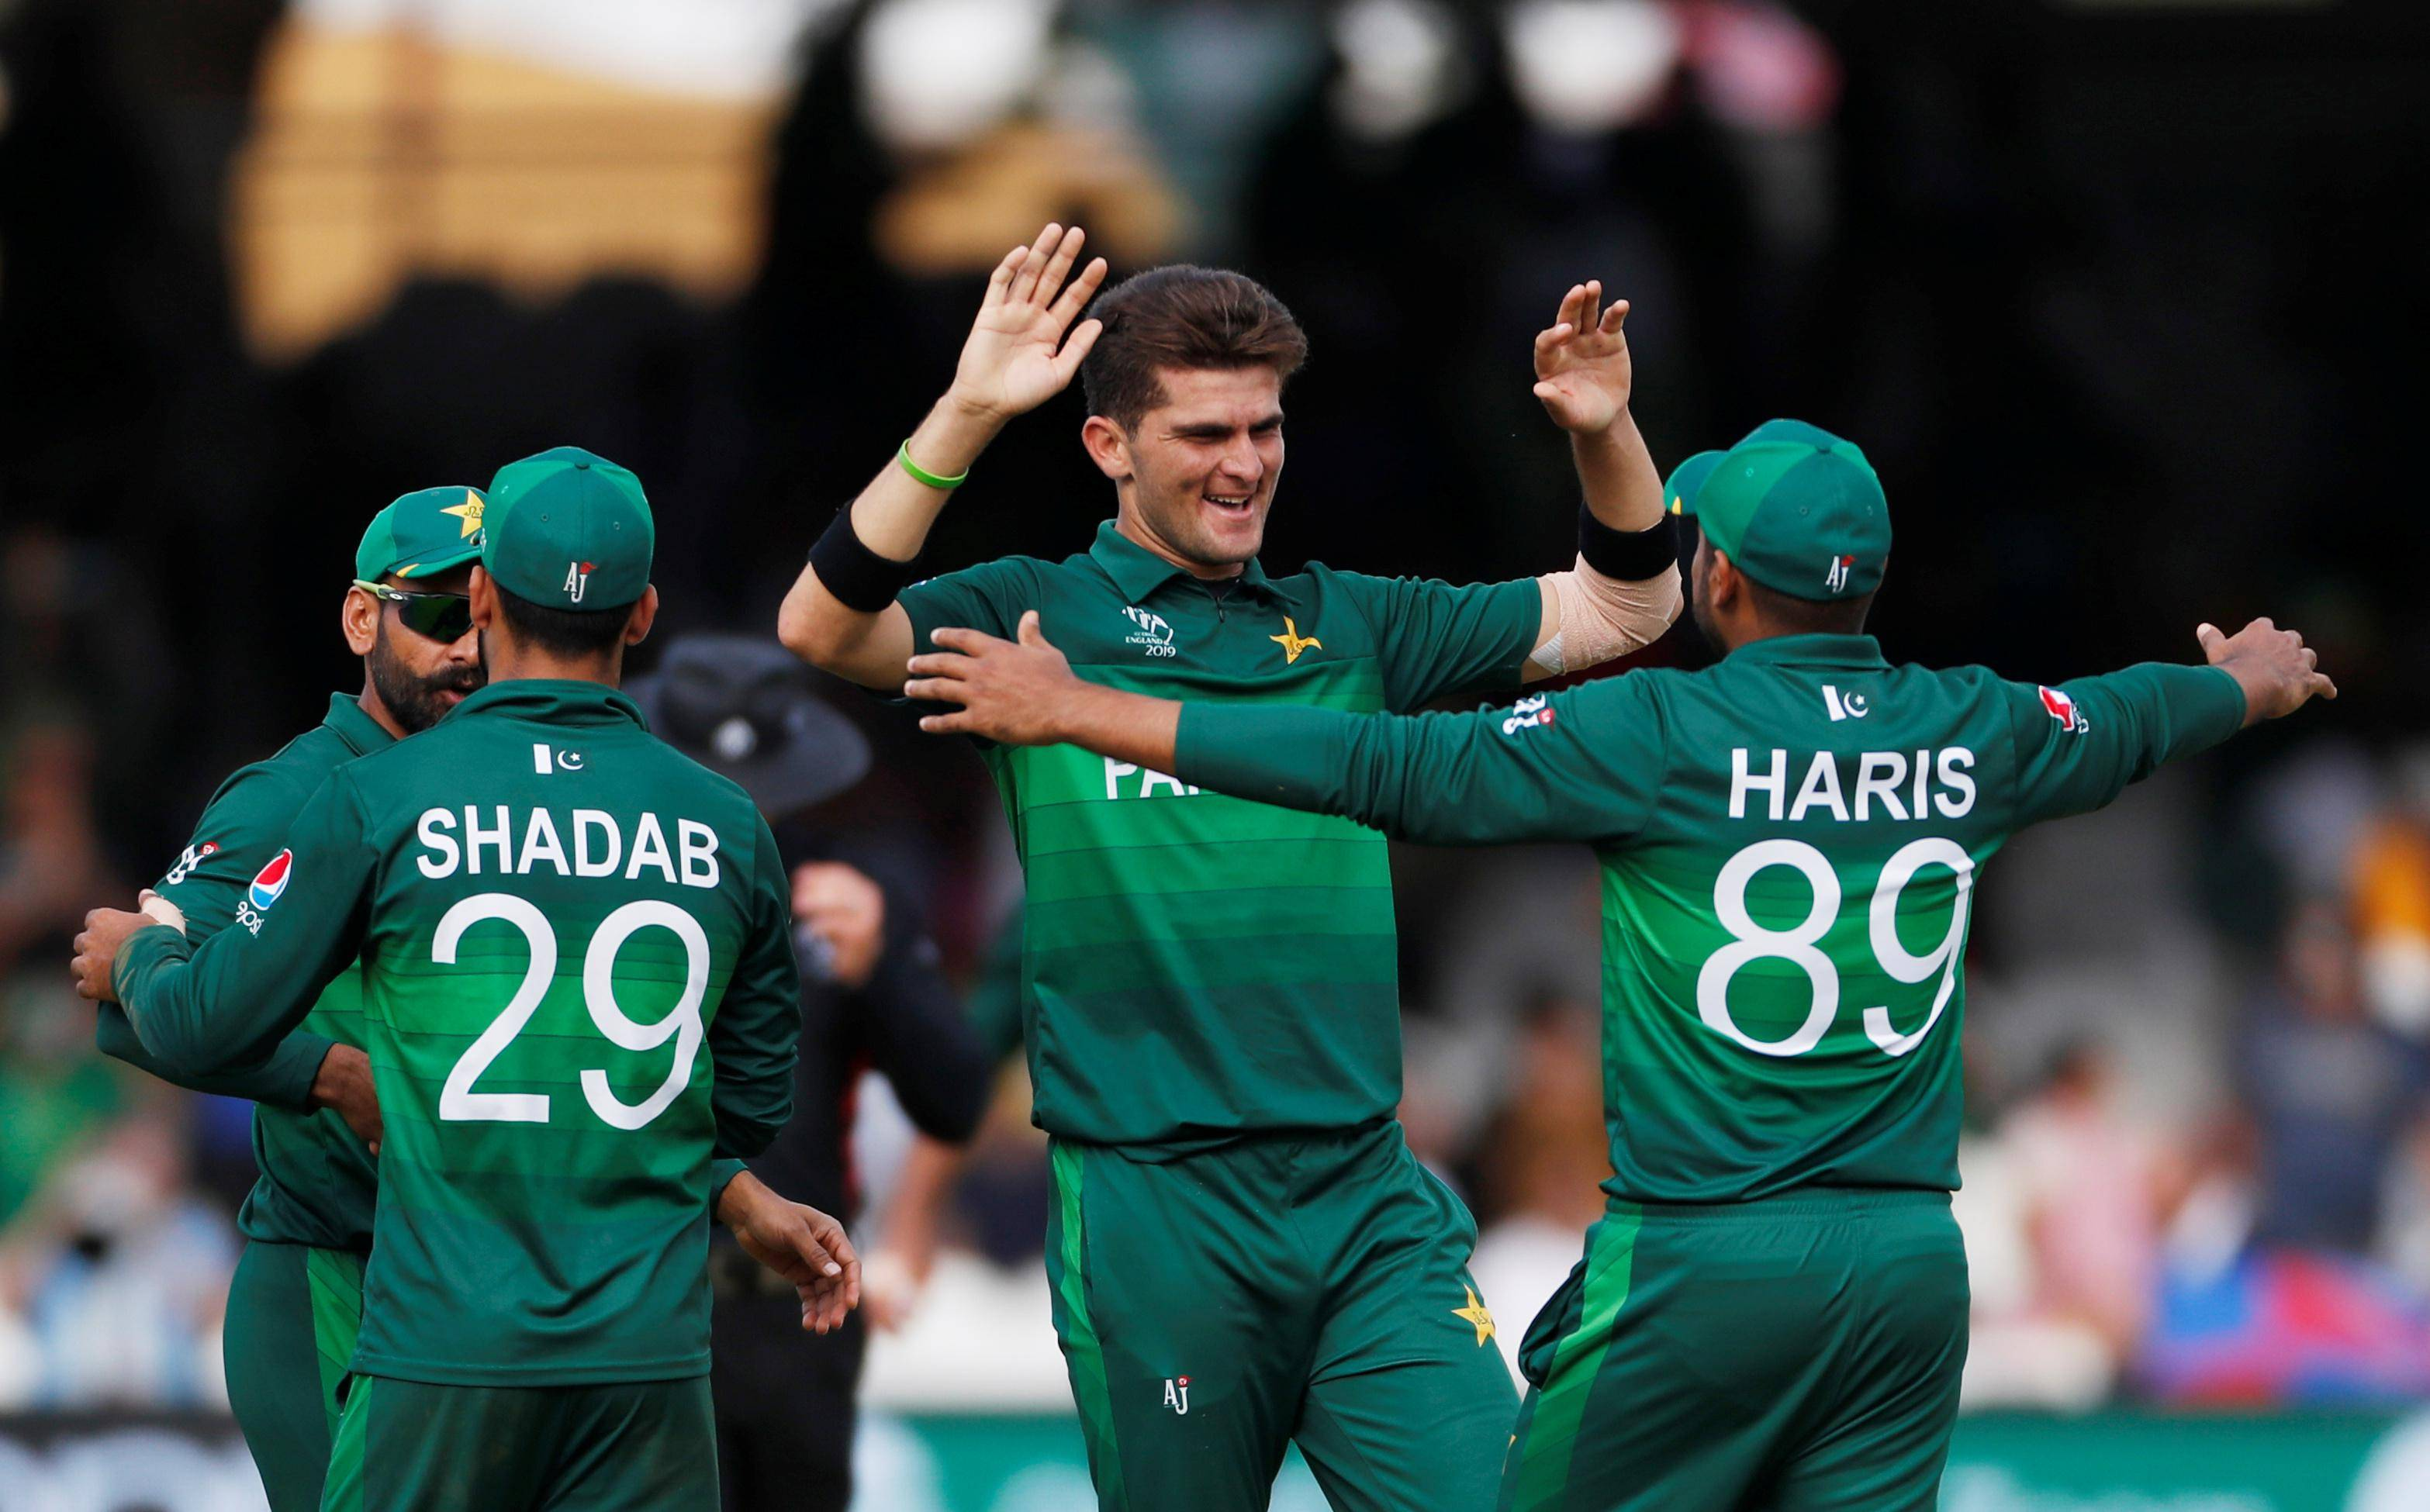 T20 World Cup: New Zealand up against red-hot Pakistan